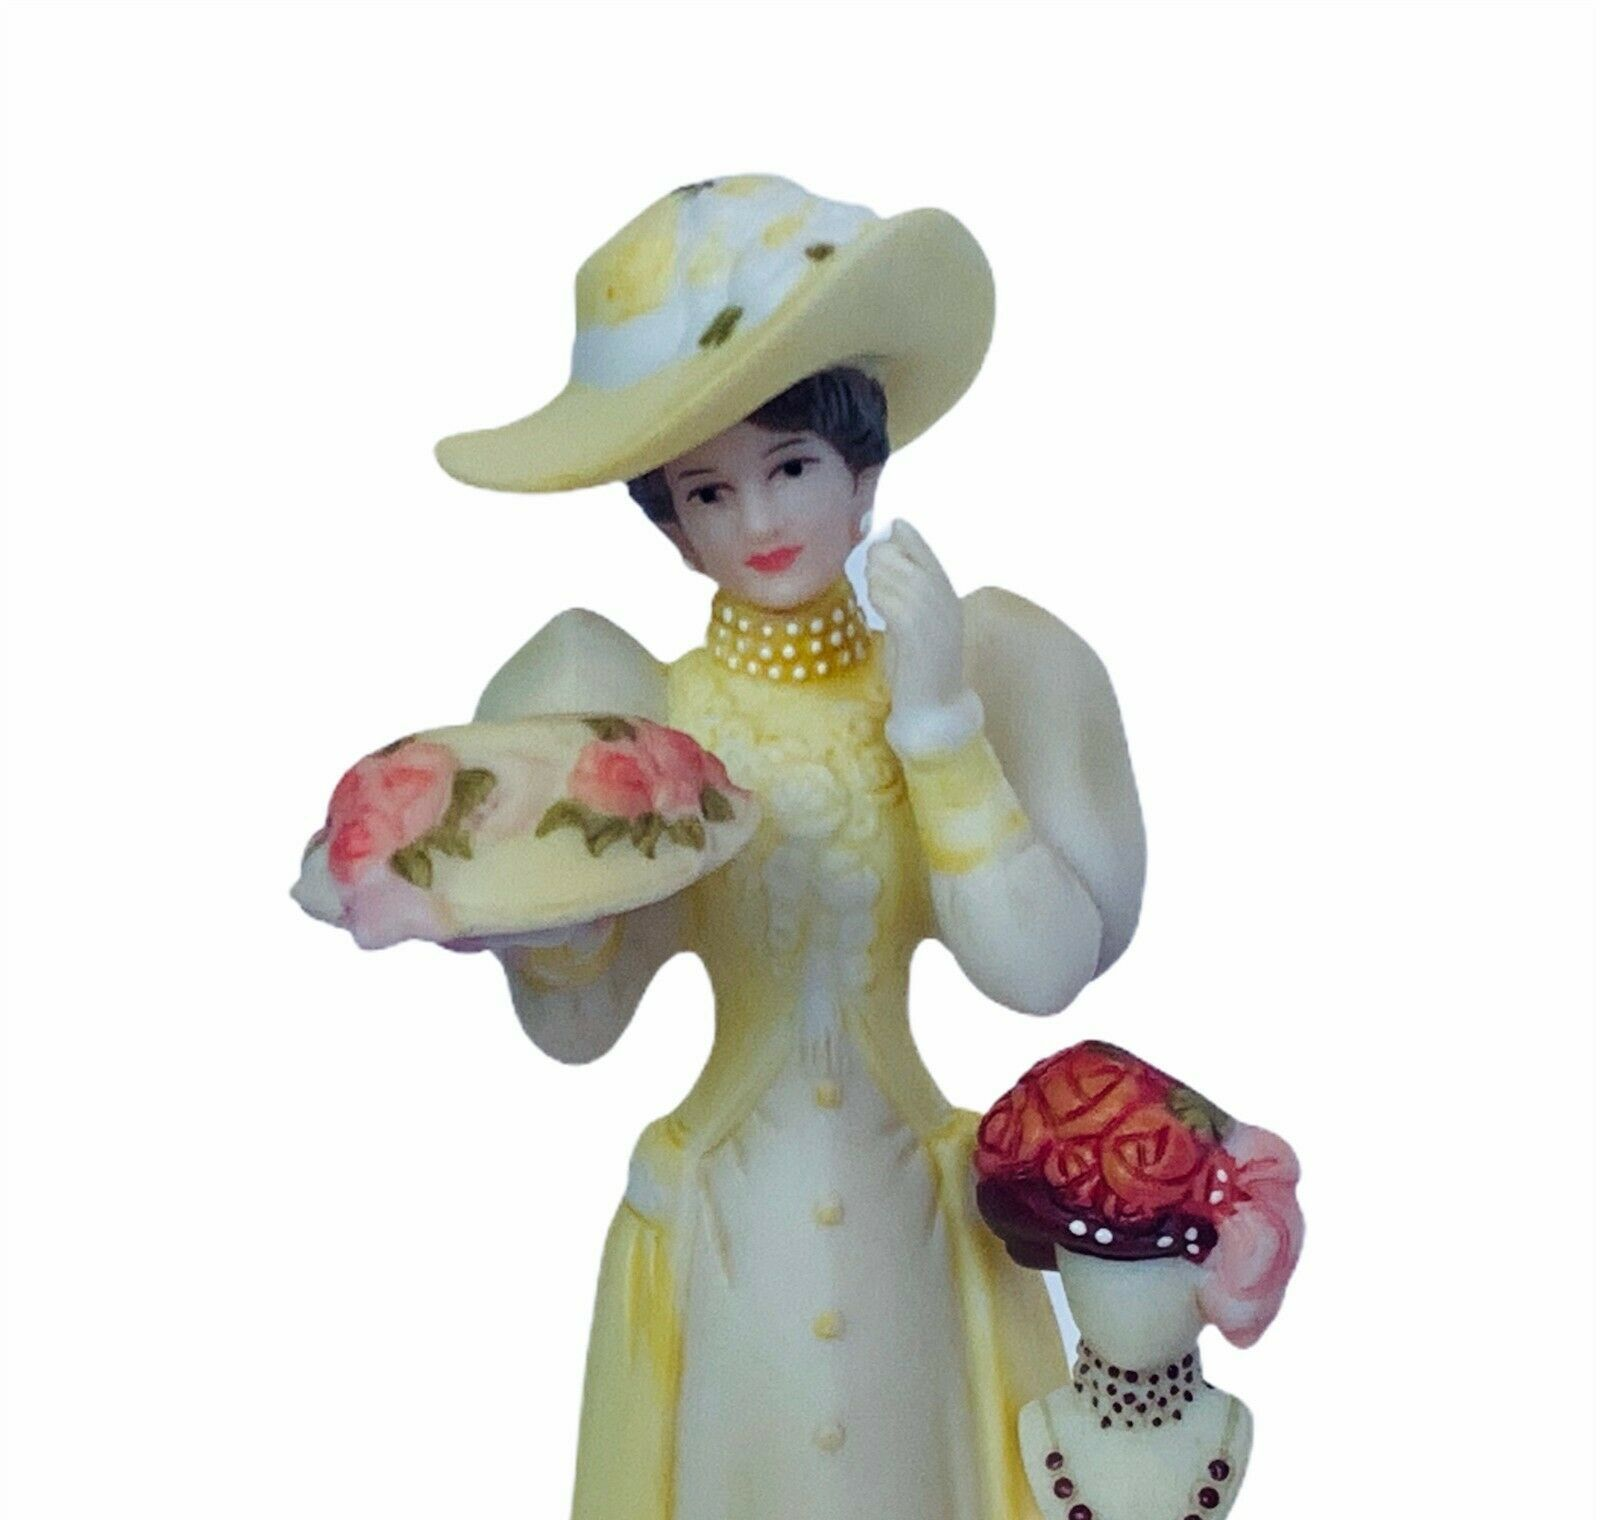 Avon glass dome figurine Mrs Albee porcelain collectible gift decor Hat lady vtg - $62.84